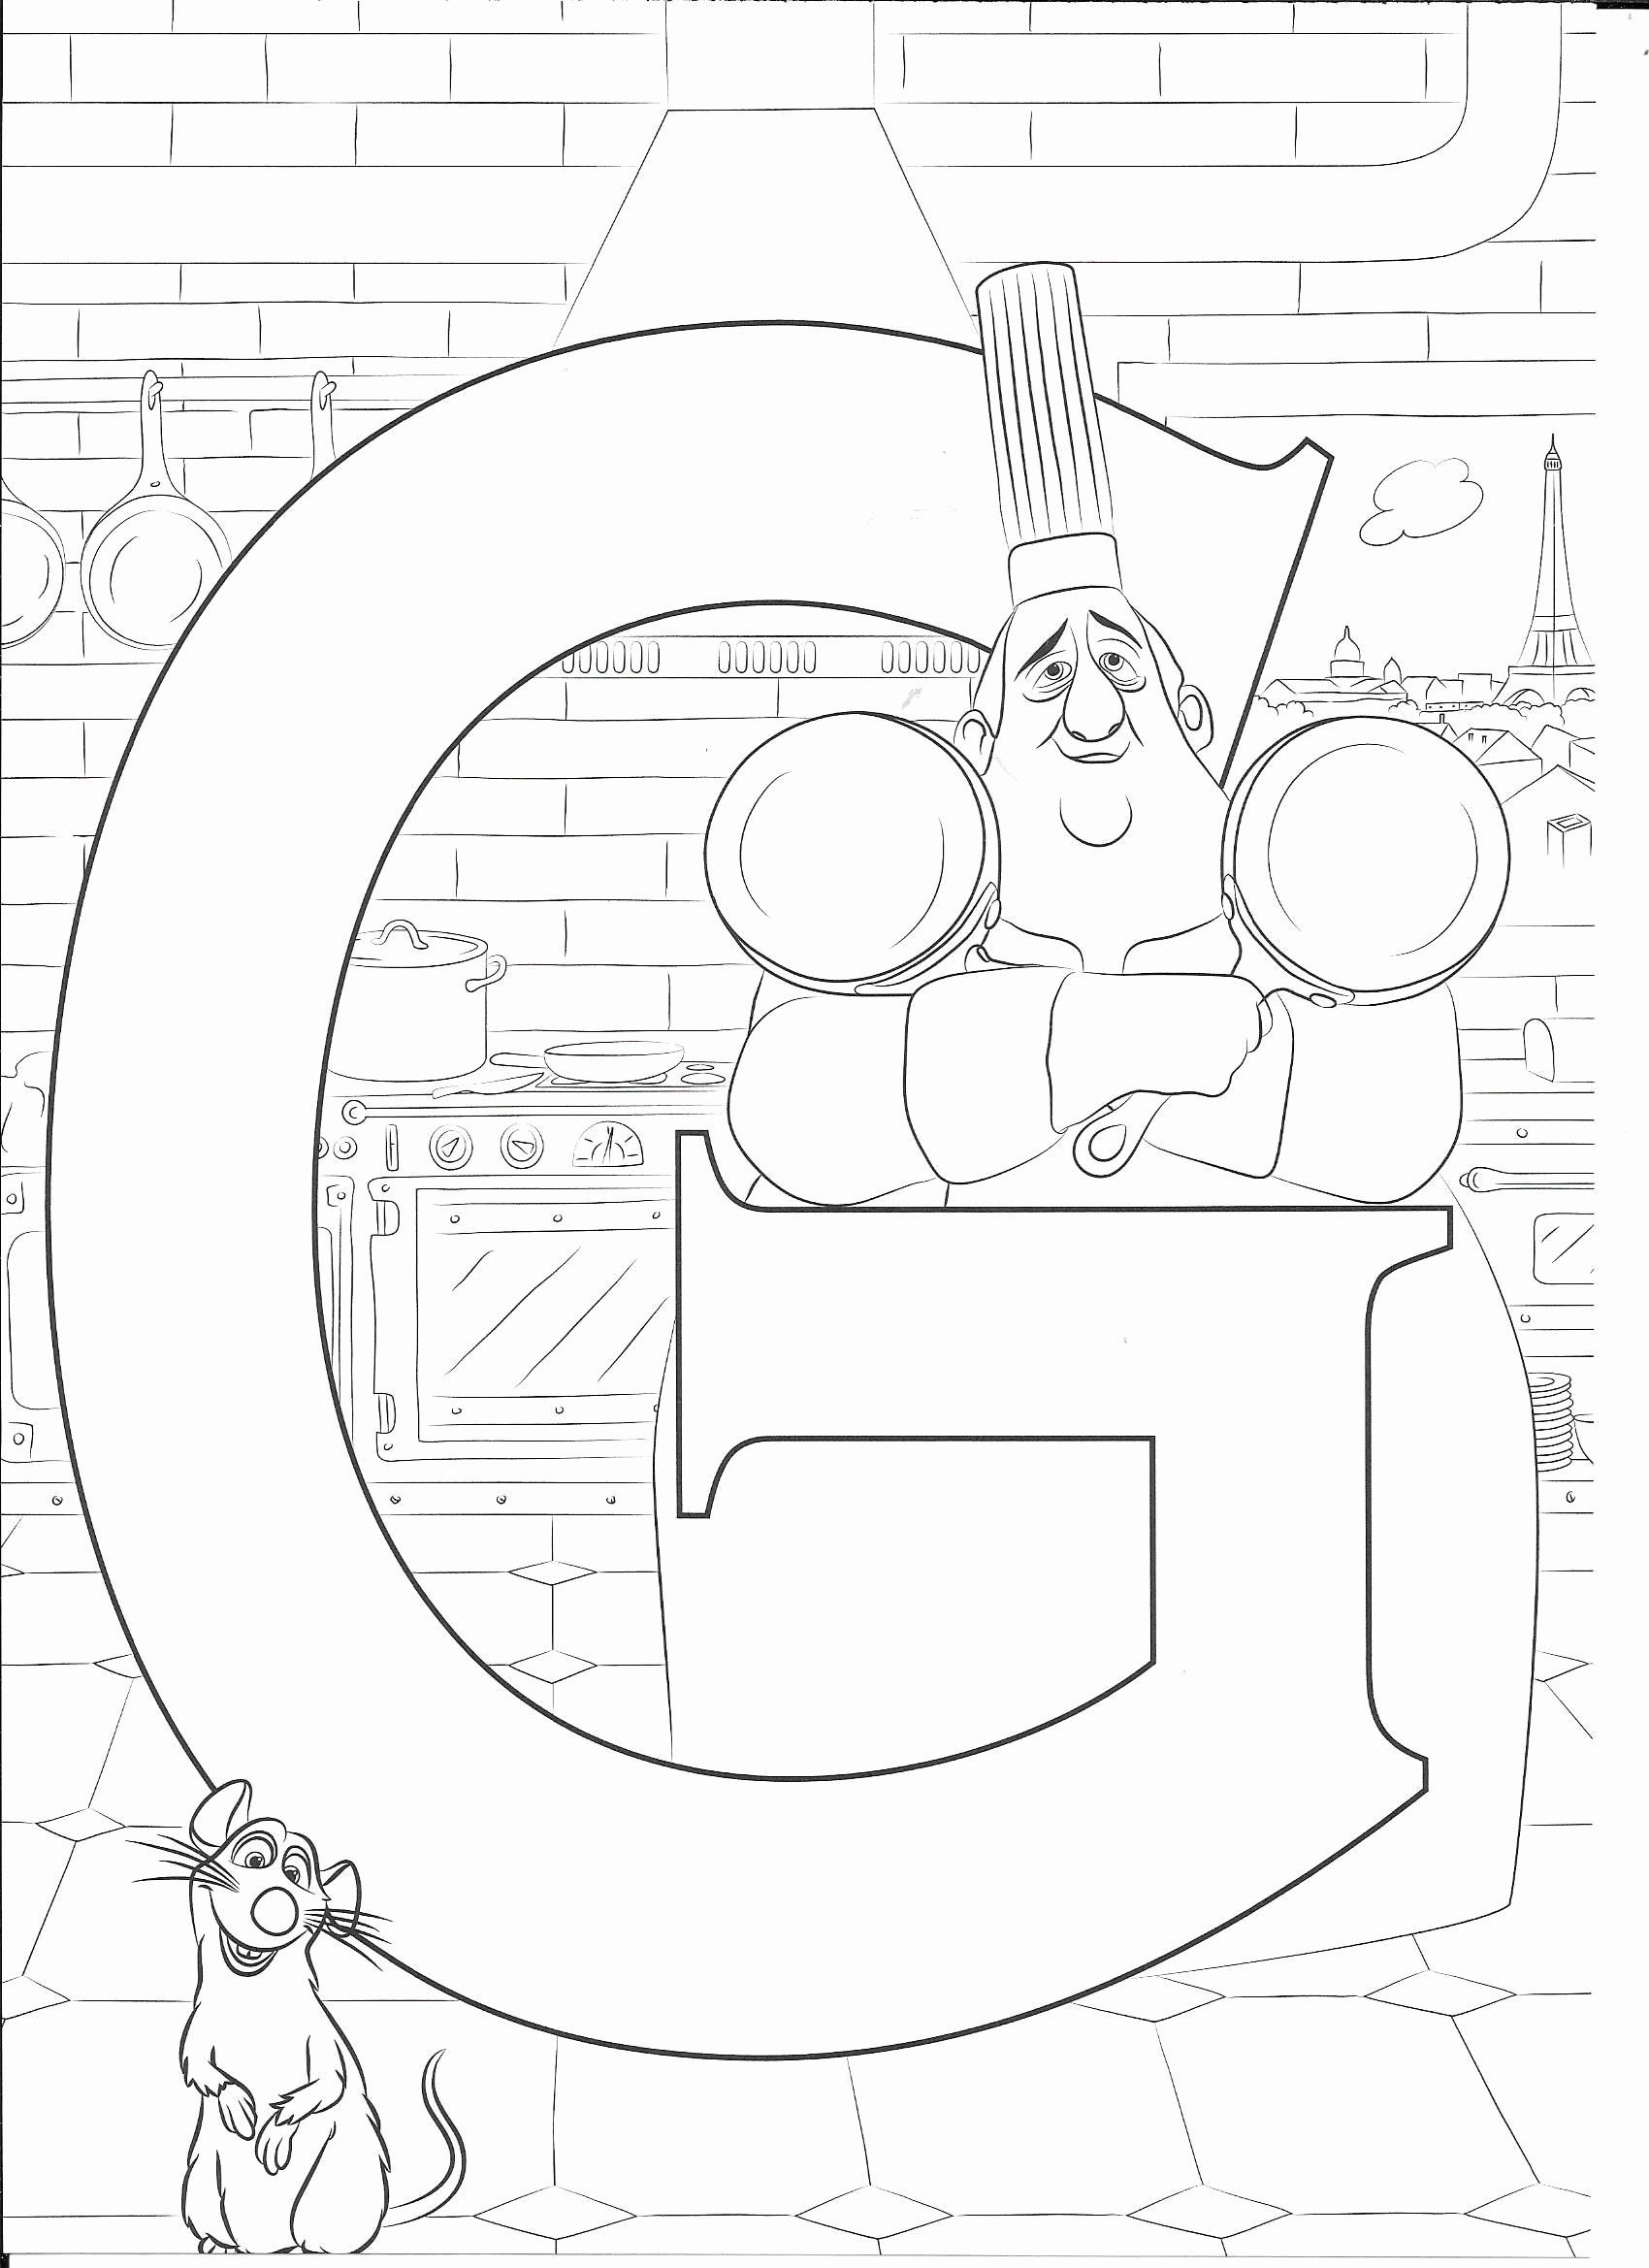 Most Up To Date Pictures Alphabet Coloring Sheets Concepts It Is Not Magic Formula That Dyes Ebooks Regar In 2021 Disney Coloring Pages Abc Coloring Pages Abc Coloring [ 2338 x 1700 Pixel ]